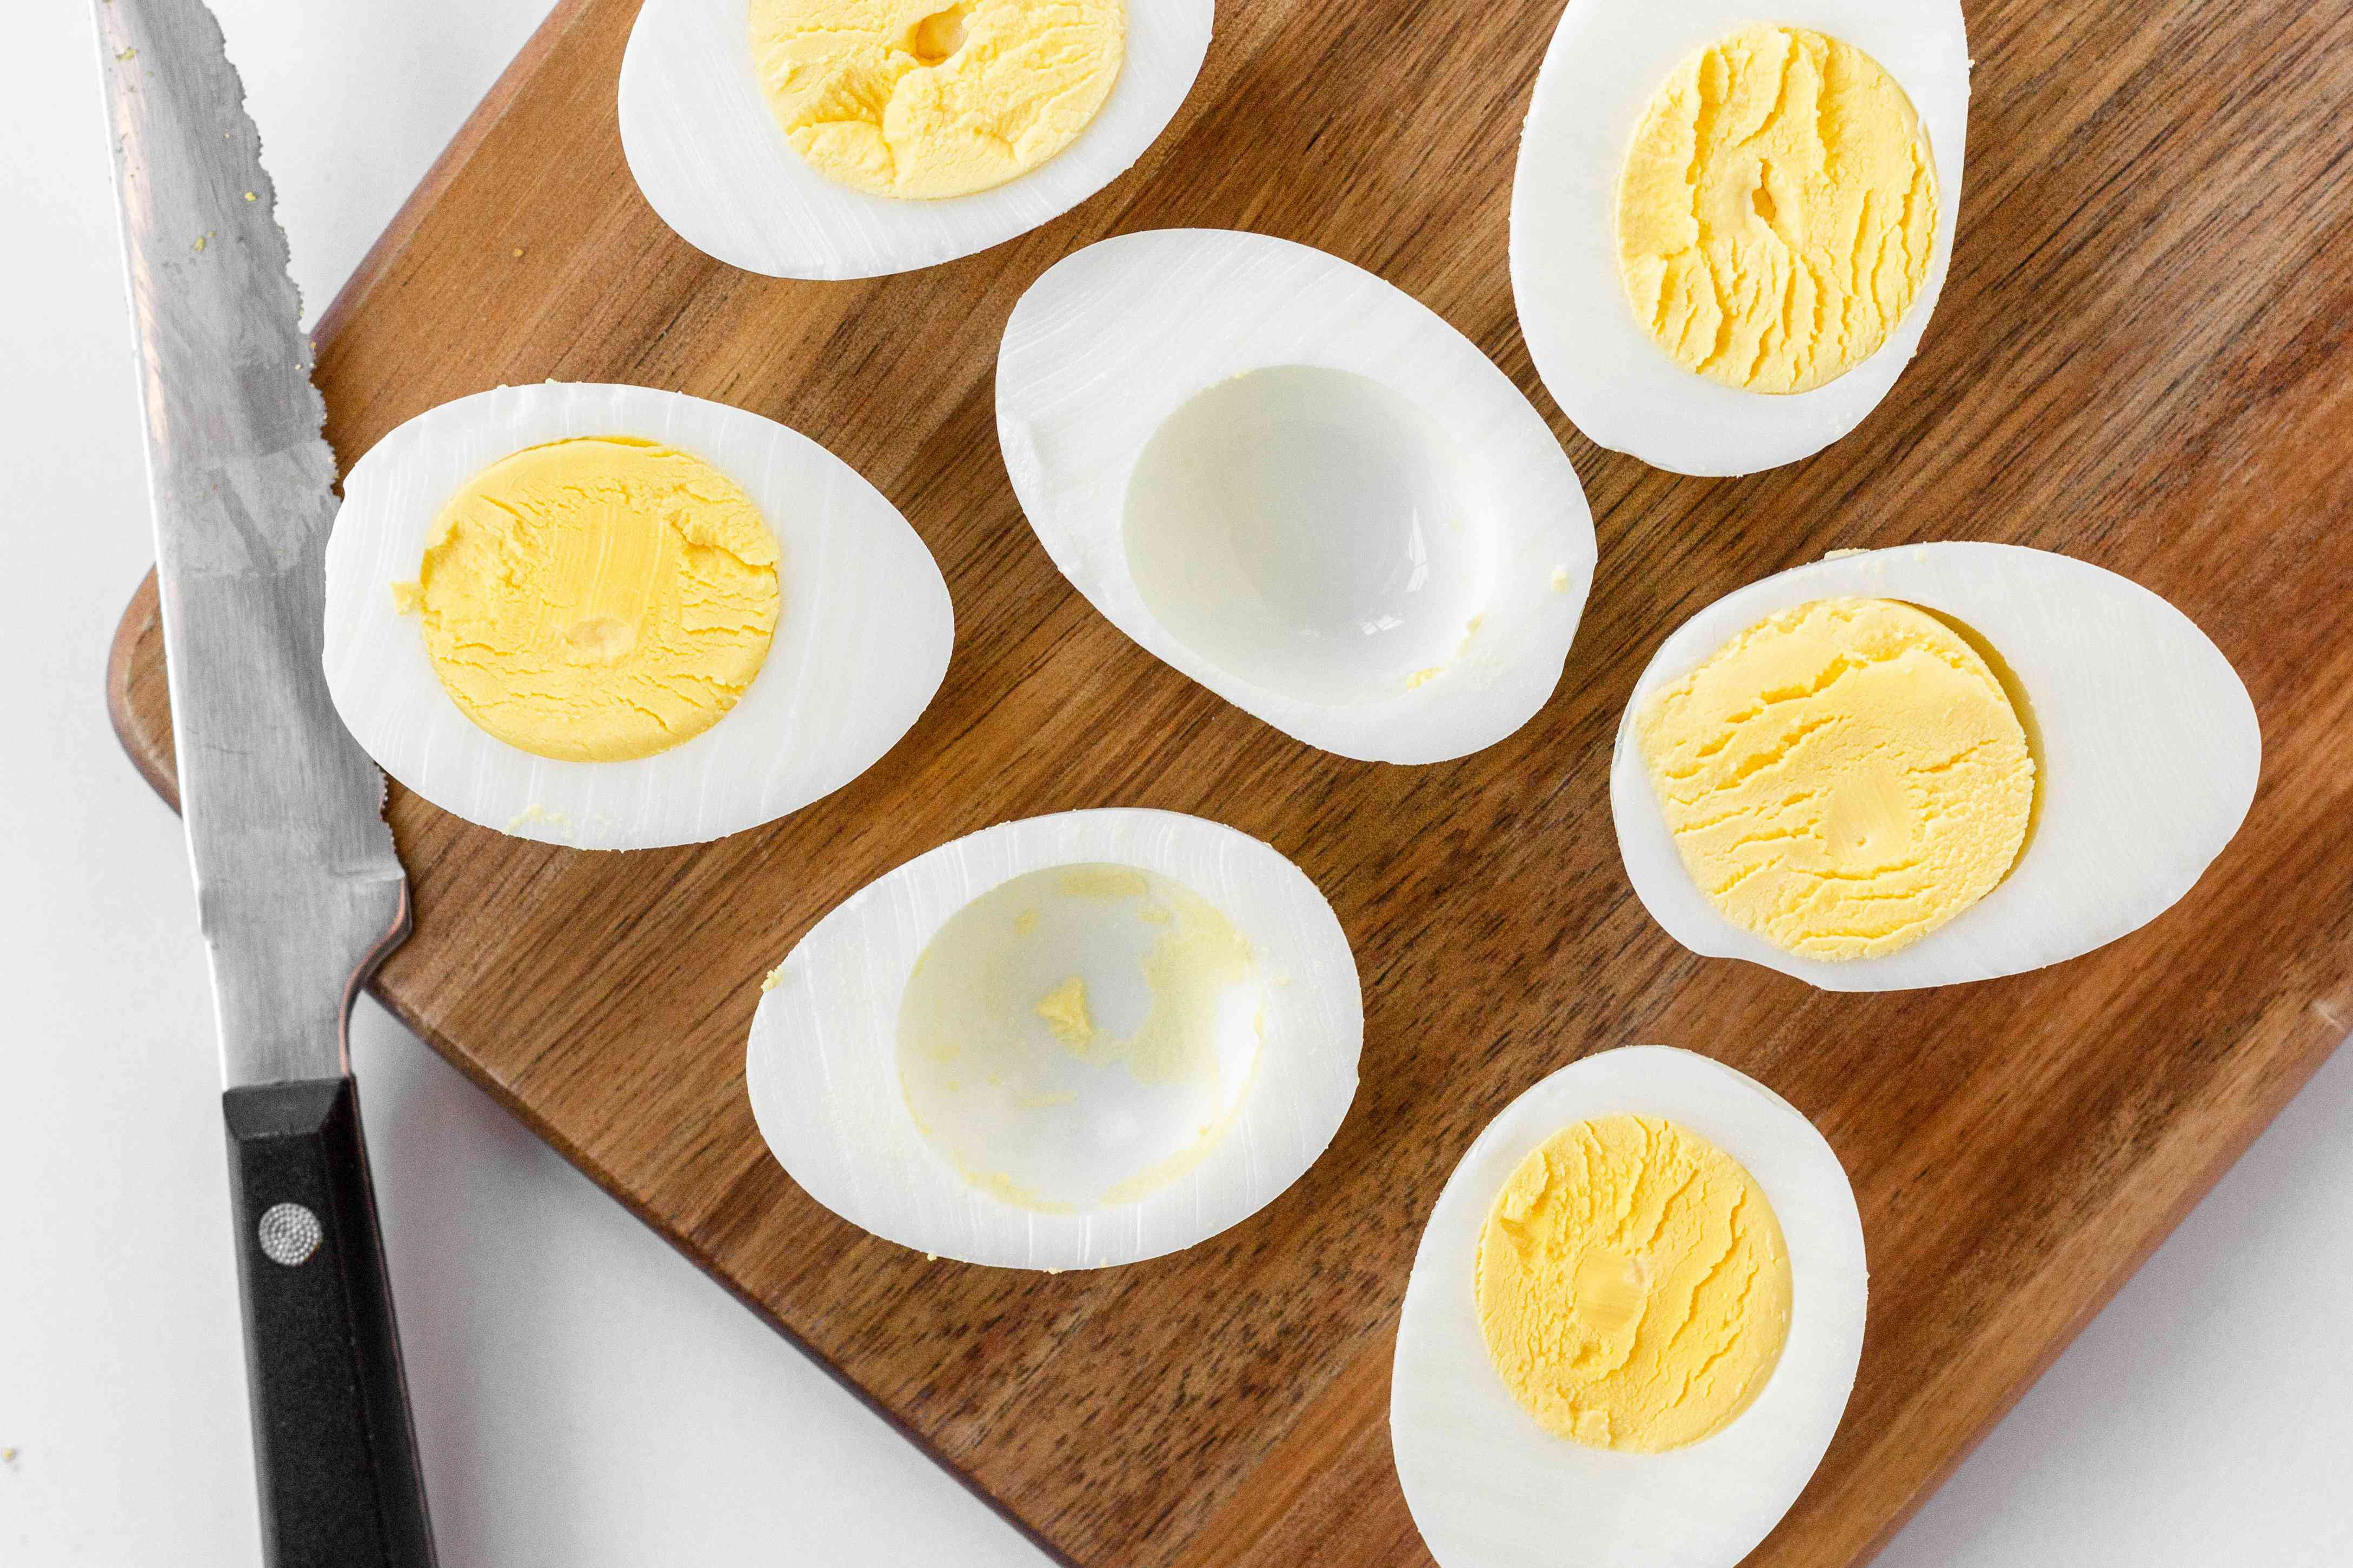 Hard boiled eggs sliced in horizontally and set on a wooden board.